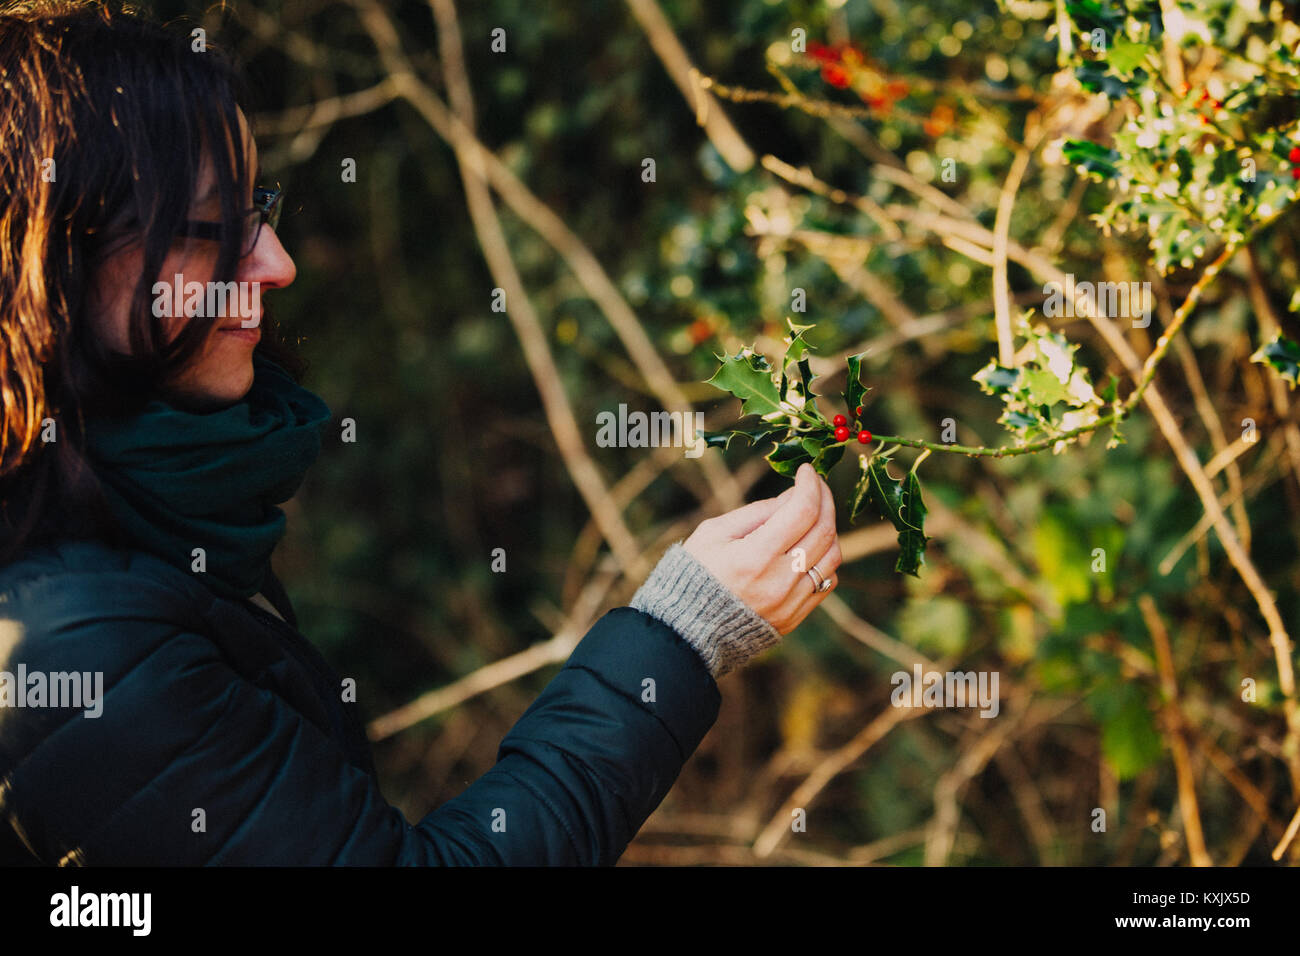 Girl holding an Irish female holly branch with spiny leaves and red berries - Stock Image